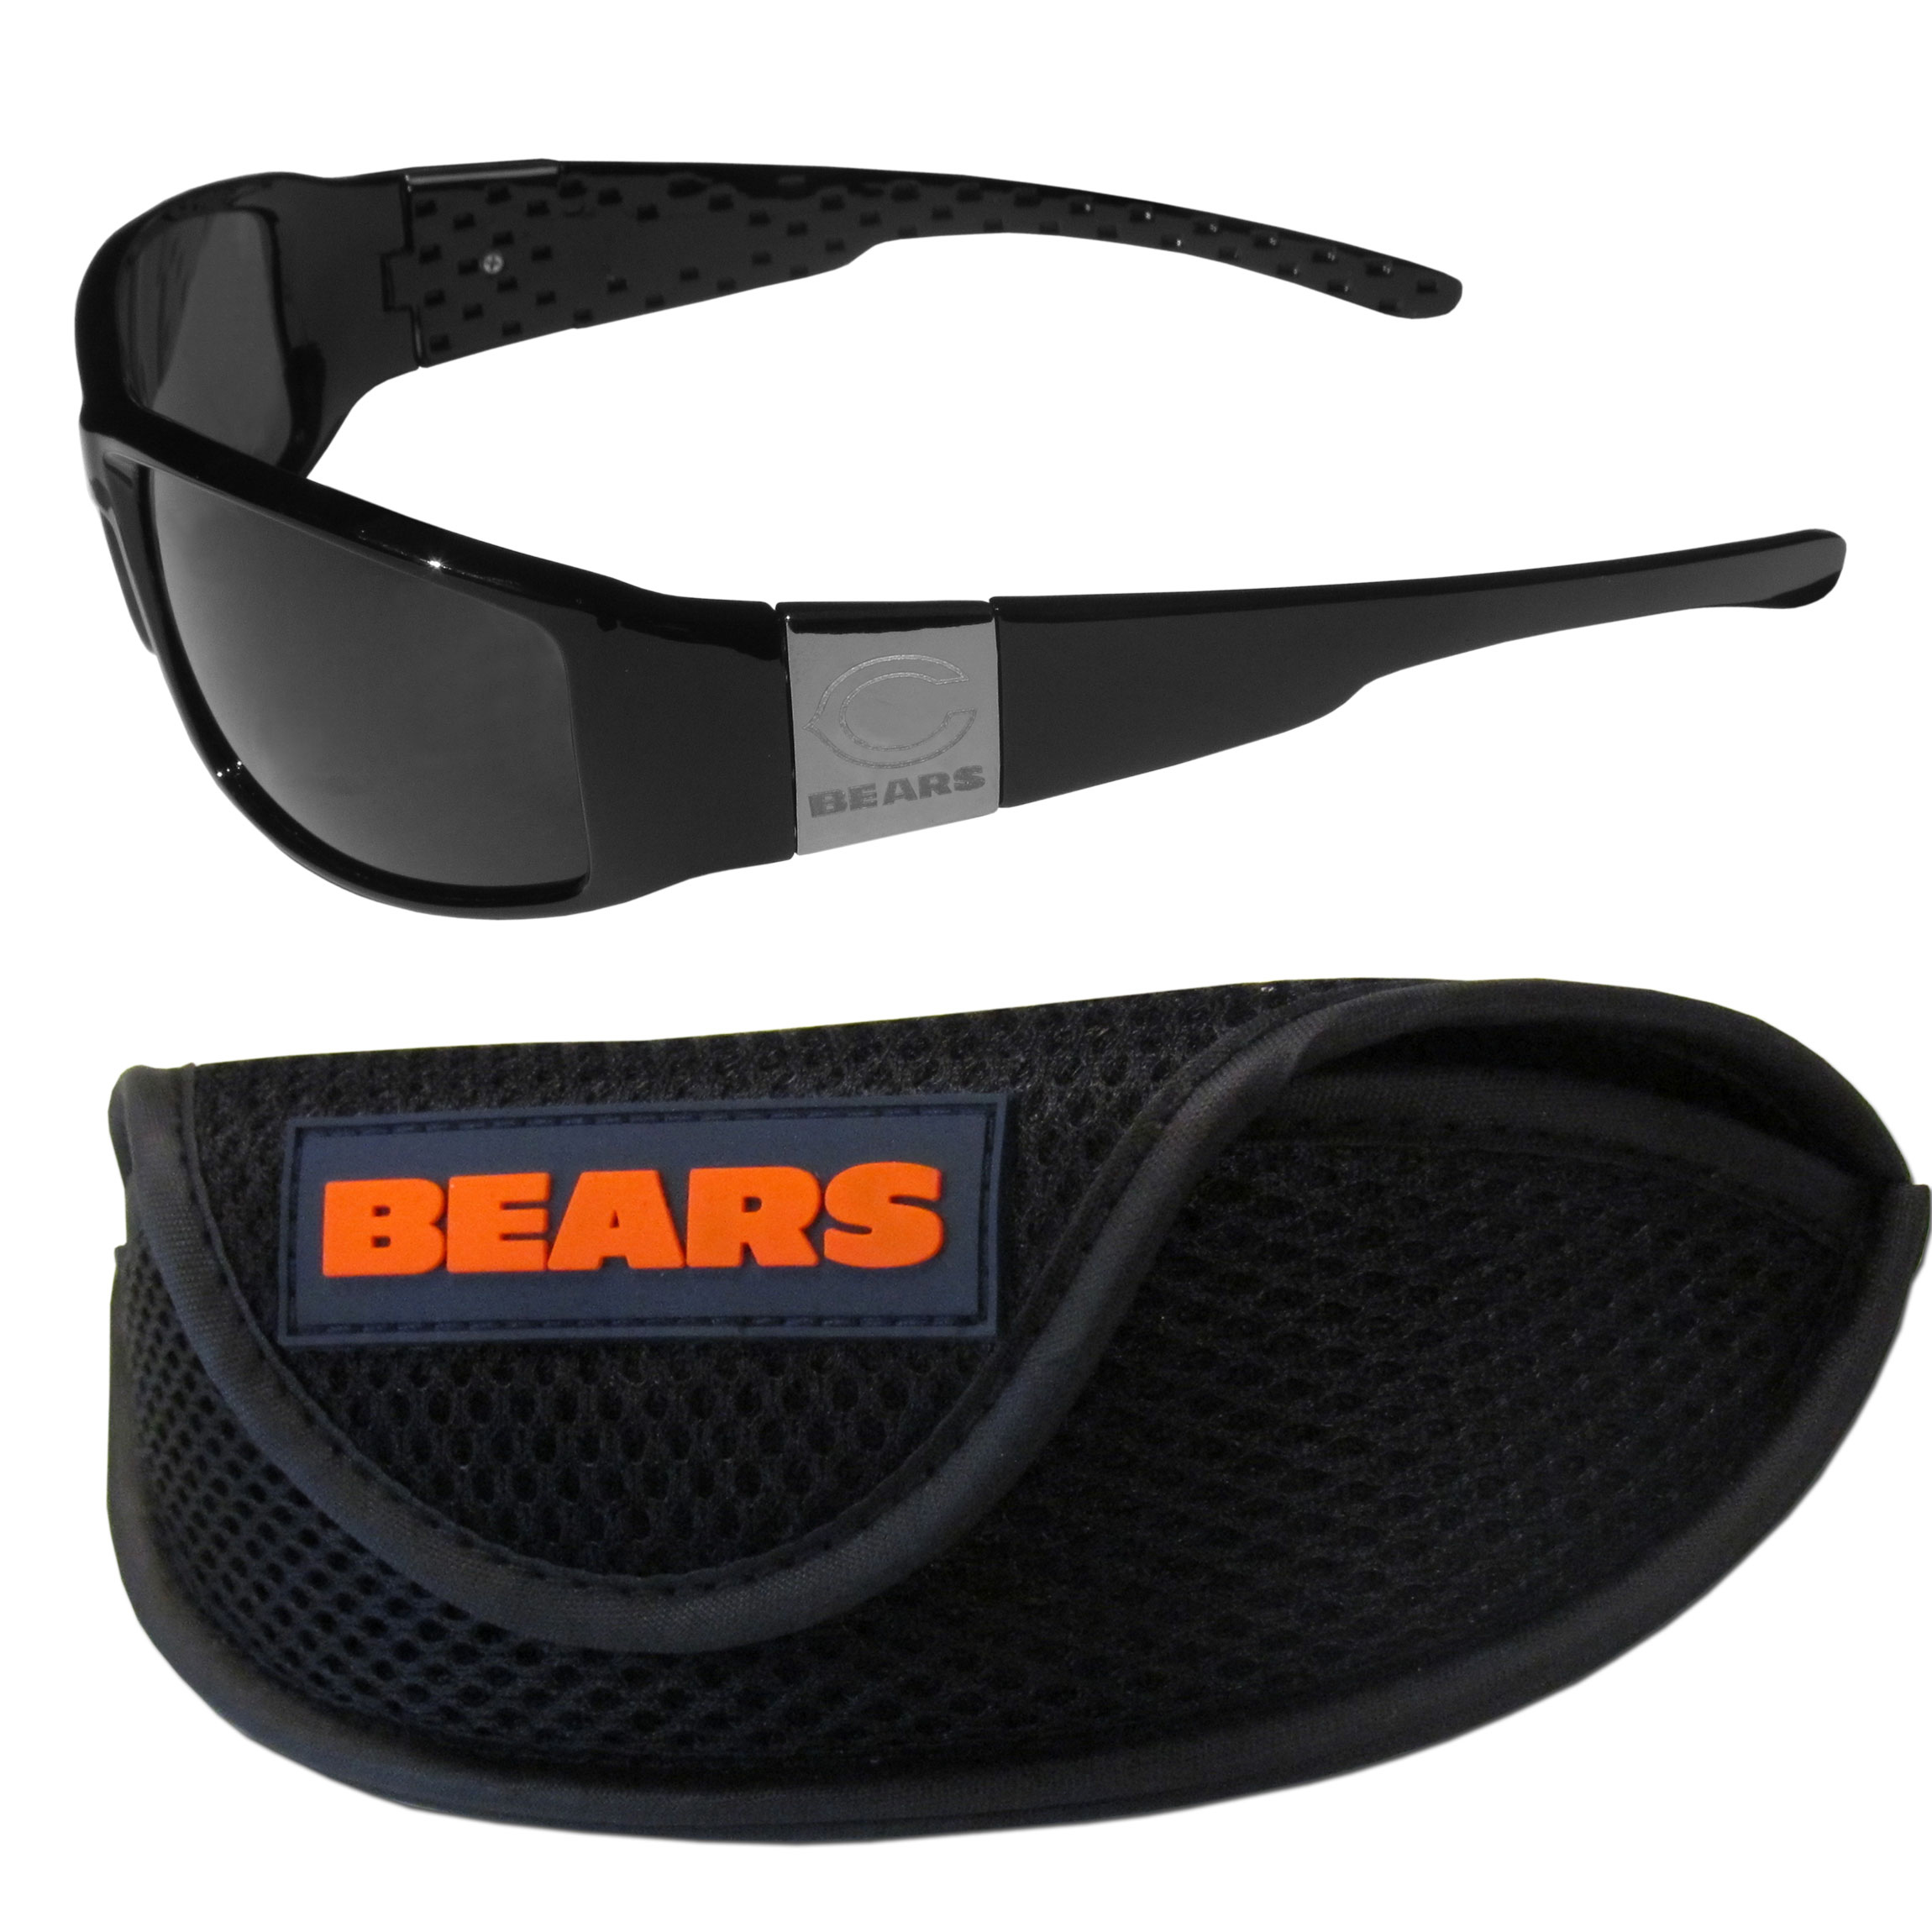 Chicago Bears Chrome Wrap Sunglasses and Sports Case - Our sleek and stylish Chicago Bears chrome wrap sunglasses and our sporty mesh case. The sunglasses feature etched team logos on each arm and 100% UVA/UVB protection. The case features a large and colorful team emblem.